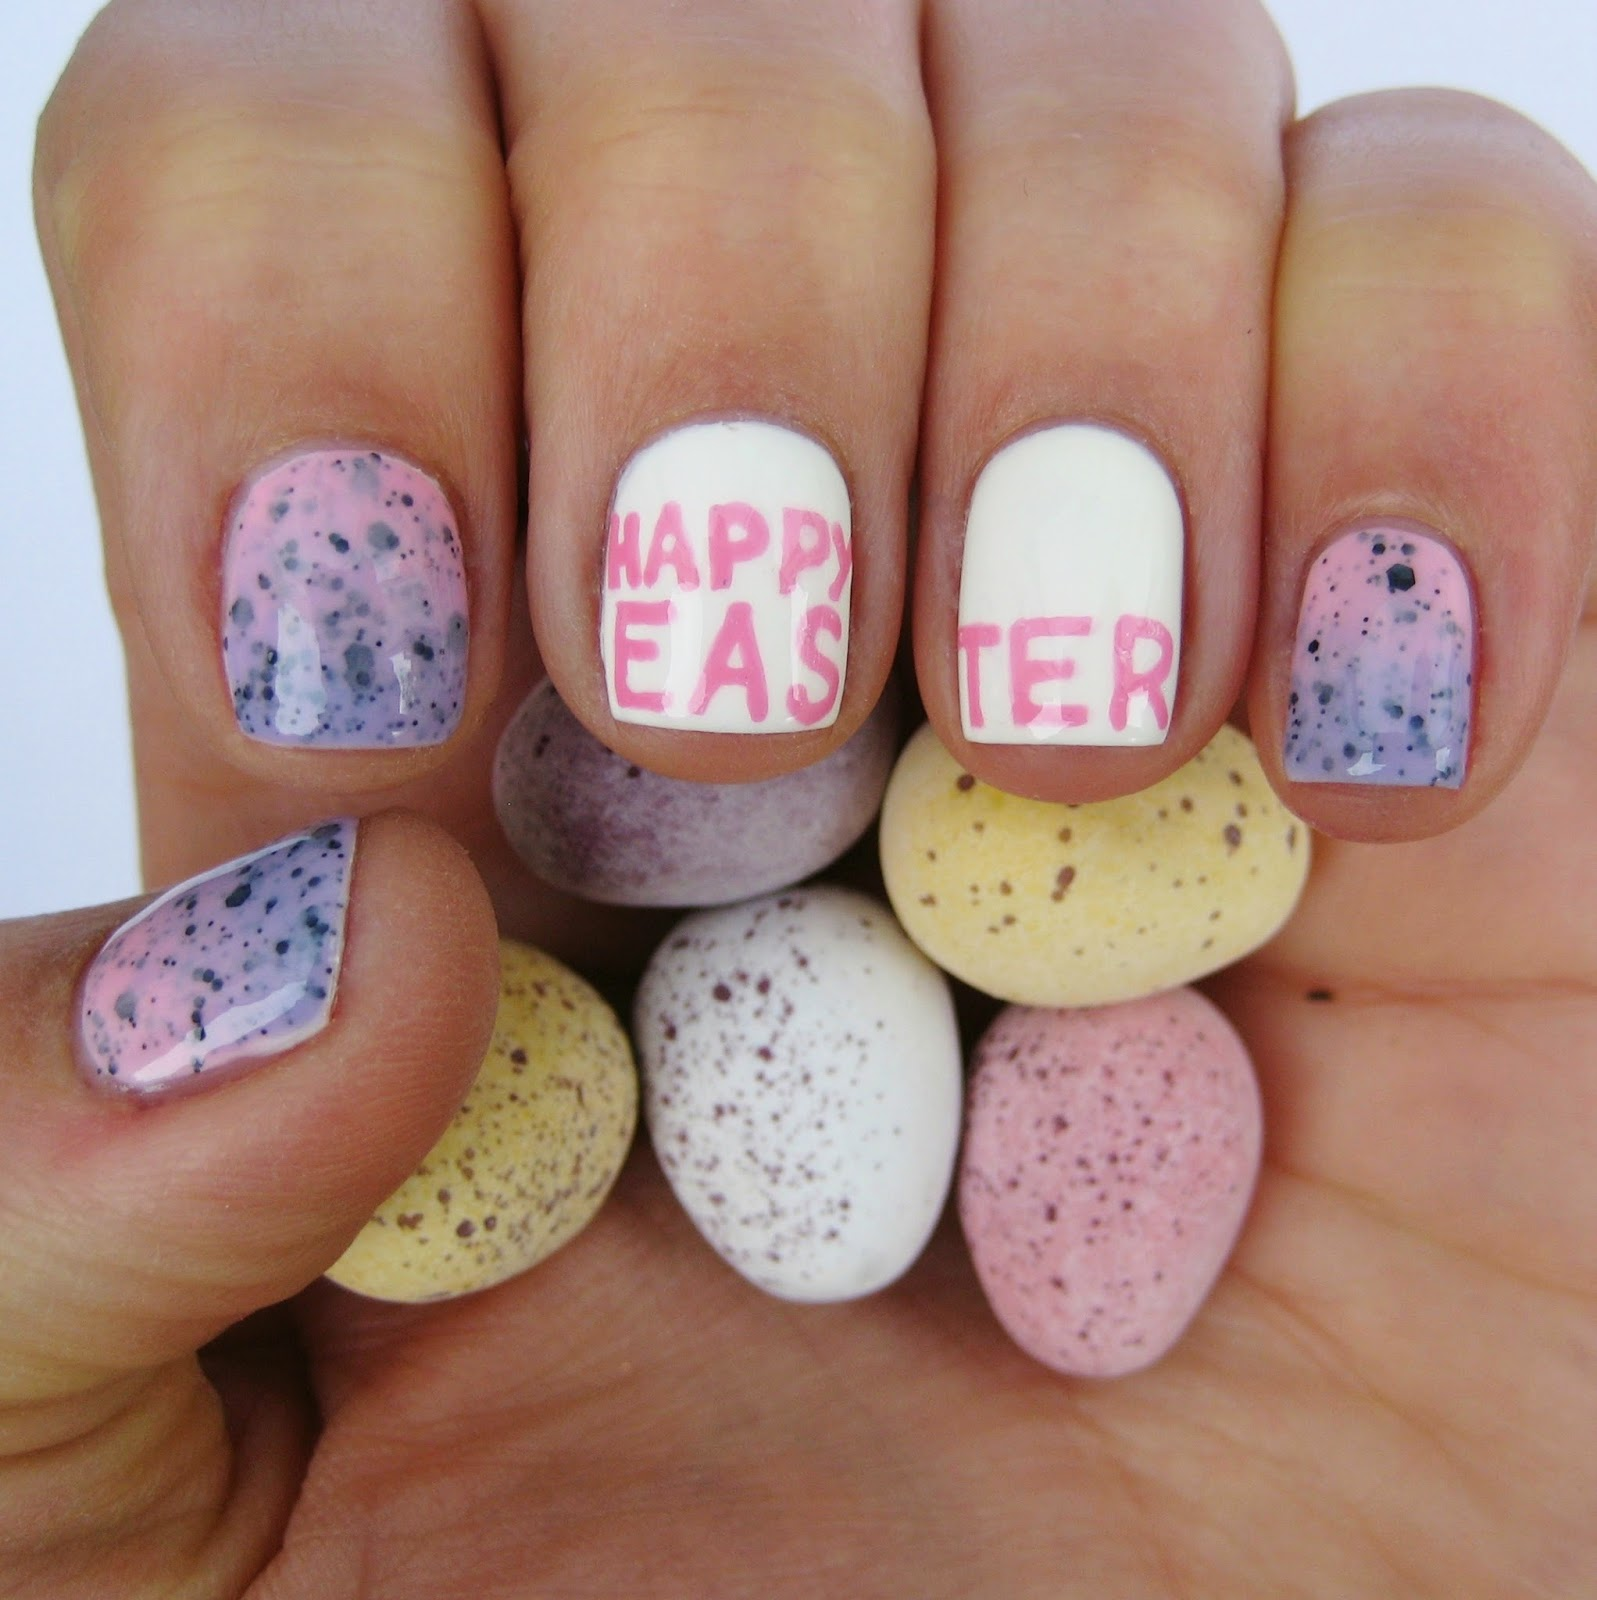 Dahlia nails happy easter easter nail art emma created an awesome easter mani earlier in the week for beauty at tesco and a whole wheel of ideas last year prinsesfo Choice Image